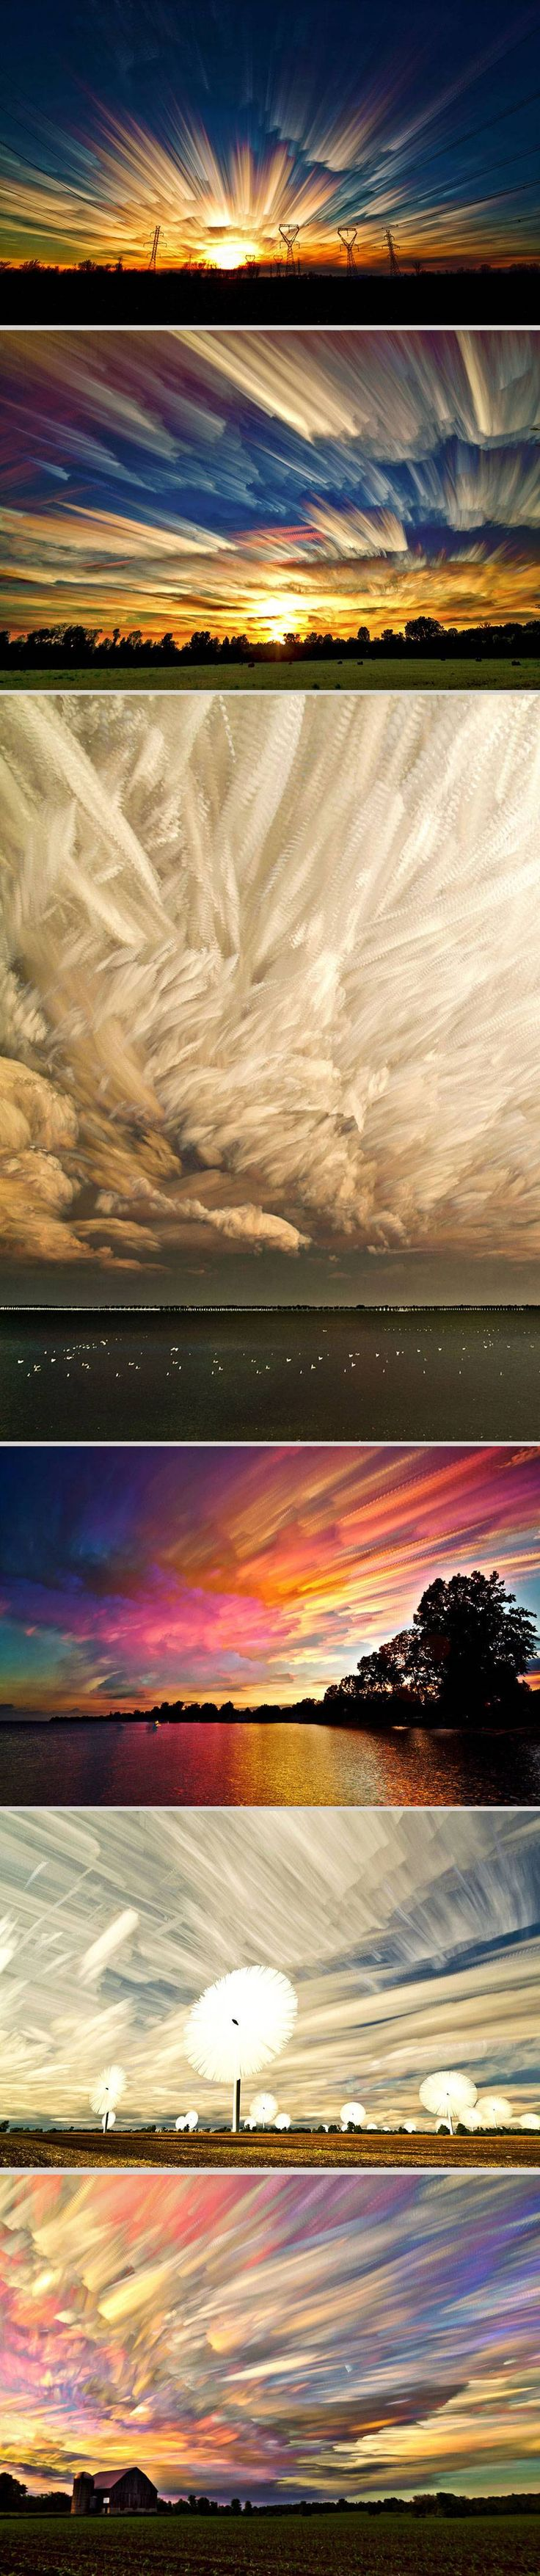 "Canada-based photographer Matt Molloy brings sky photography to a new level. By stacking hundreds of separate sky shots he is able to achieve an incredible brush-like effect. Each final picture in his ""Smeared Sky"" series is a result of combining from 100 to 200 photographs."